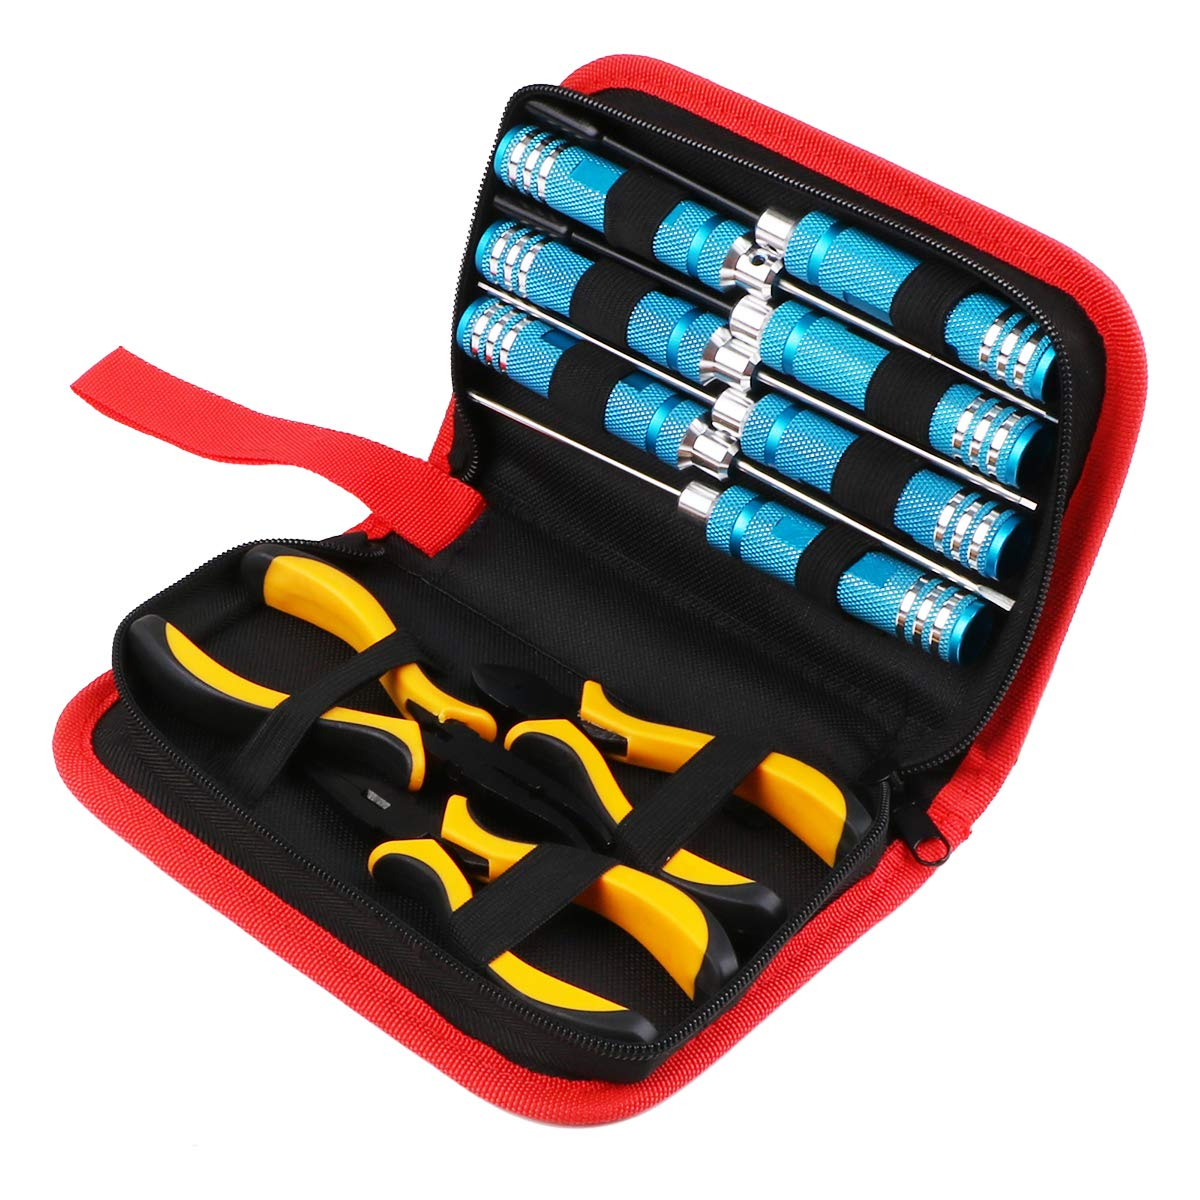 Bench Work Hex Screwdrivers RC Screwdriver Tools Kit H1.5, H2.0, H2.5, 0+, 1-, 4.0 Box, 5.0 Box High Speed Steel for RC Model Robotics 7 Pieces Hex Driver Precision Engineering